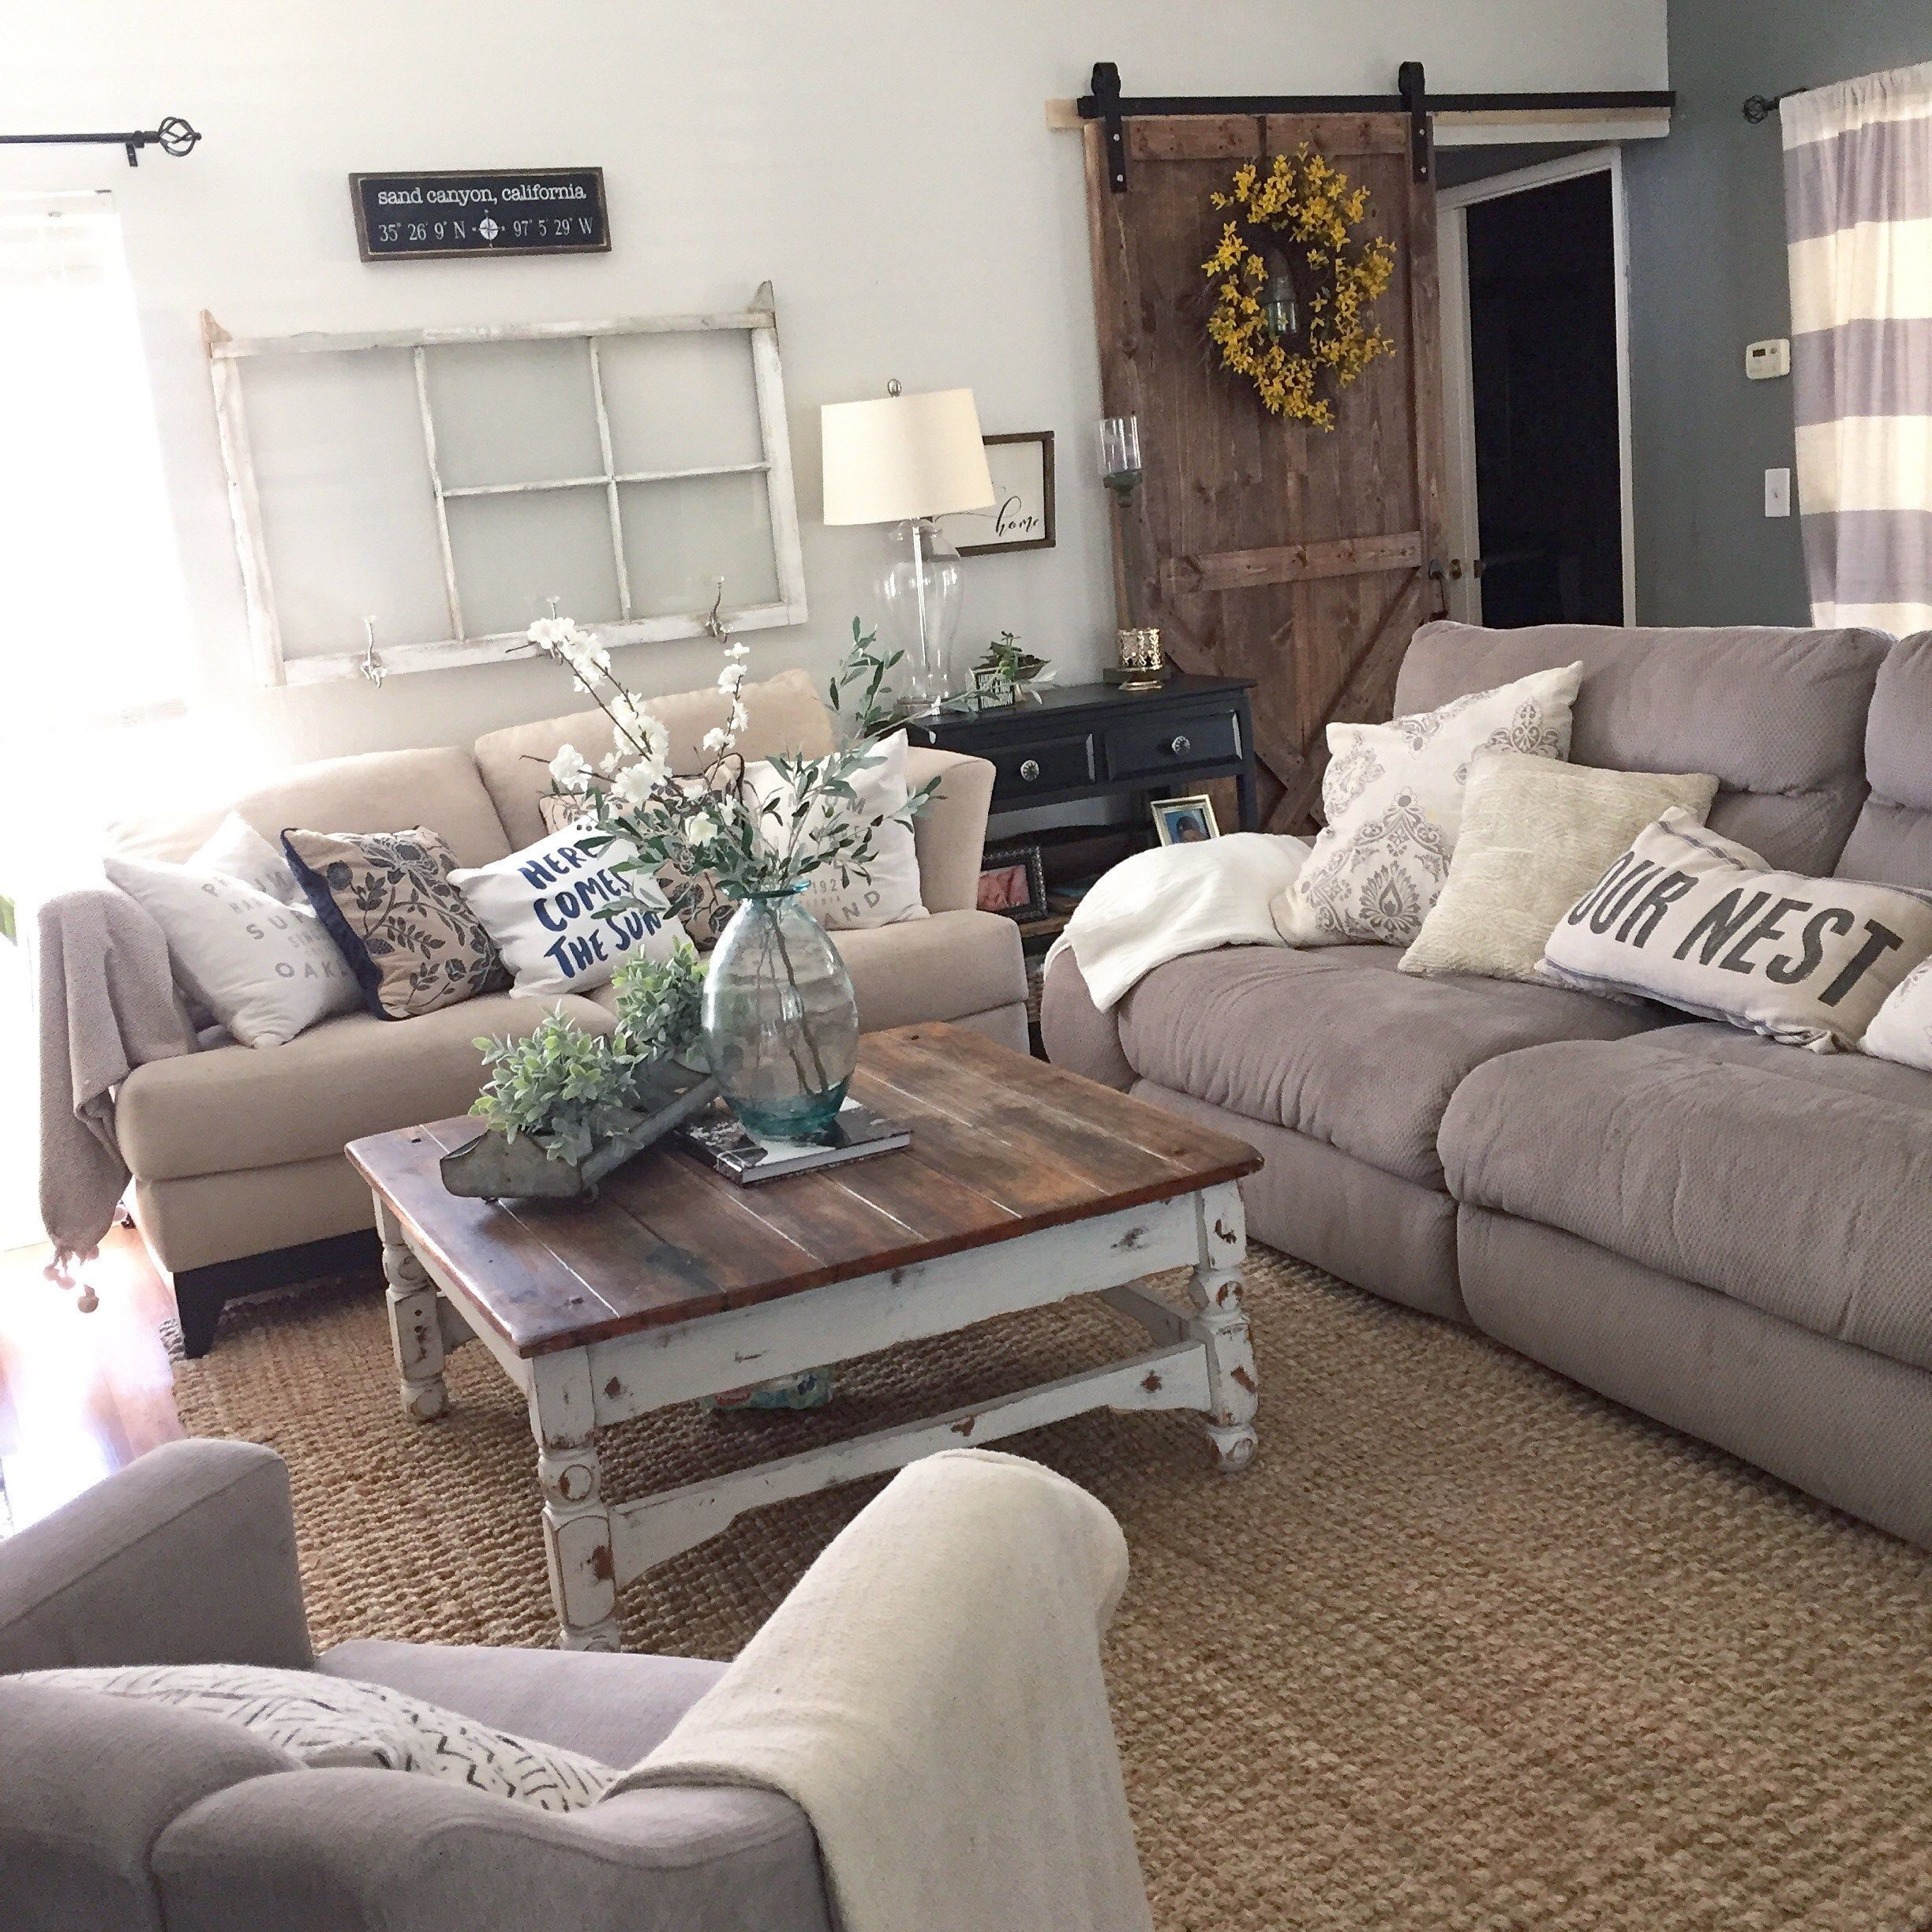 Beautiful Living Room Styles: Lifestyle. Decor. Vintage